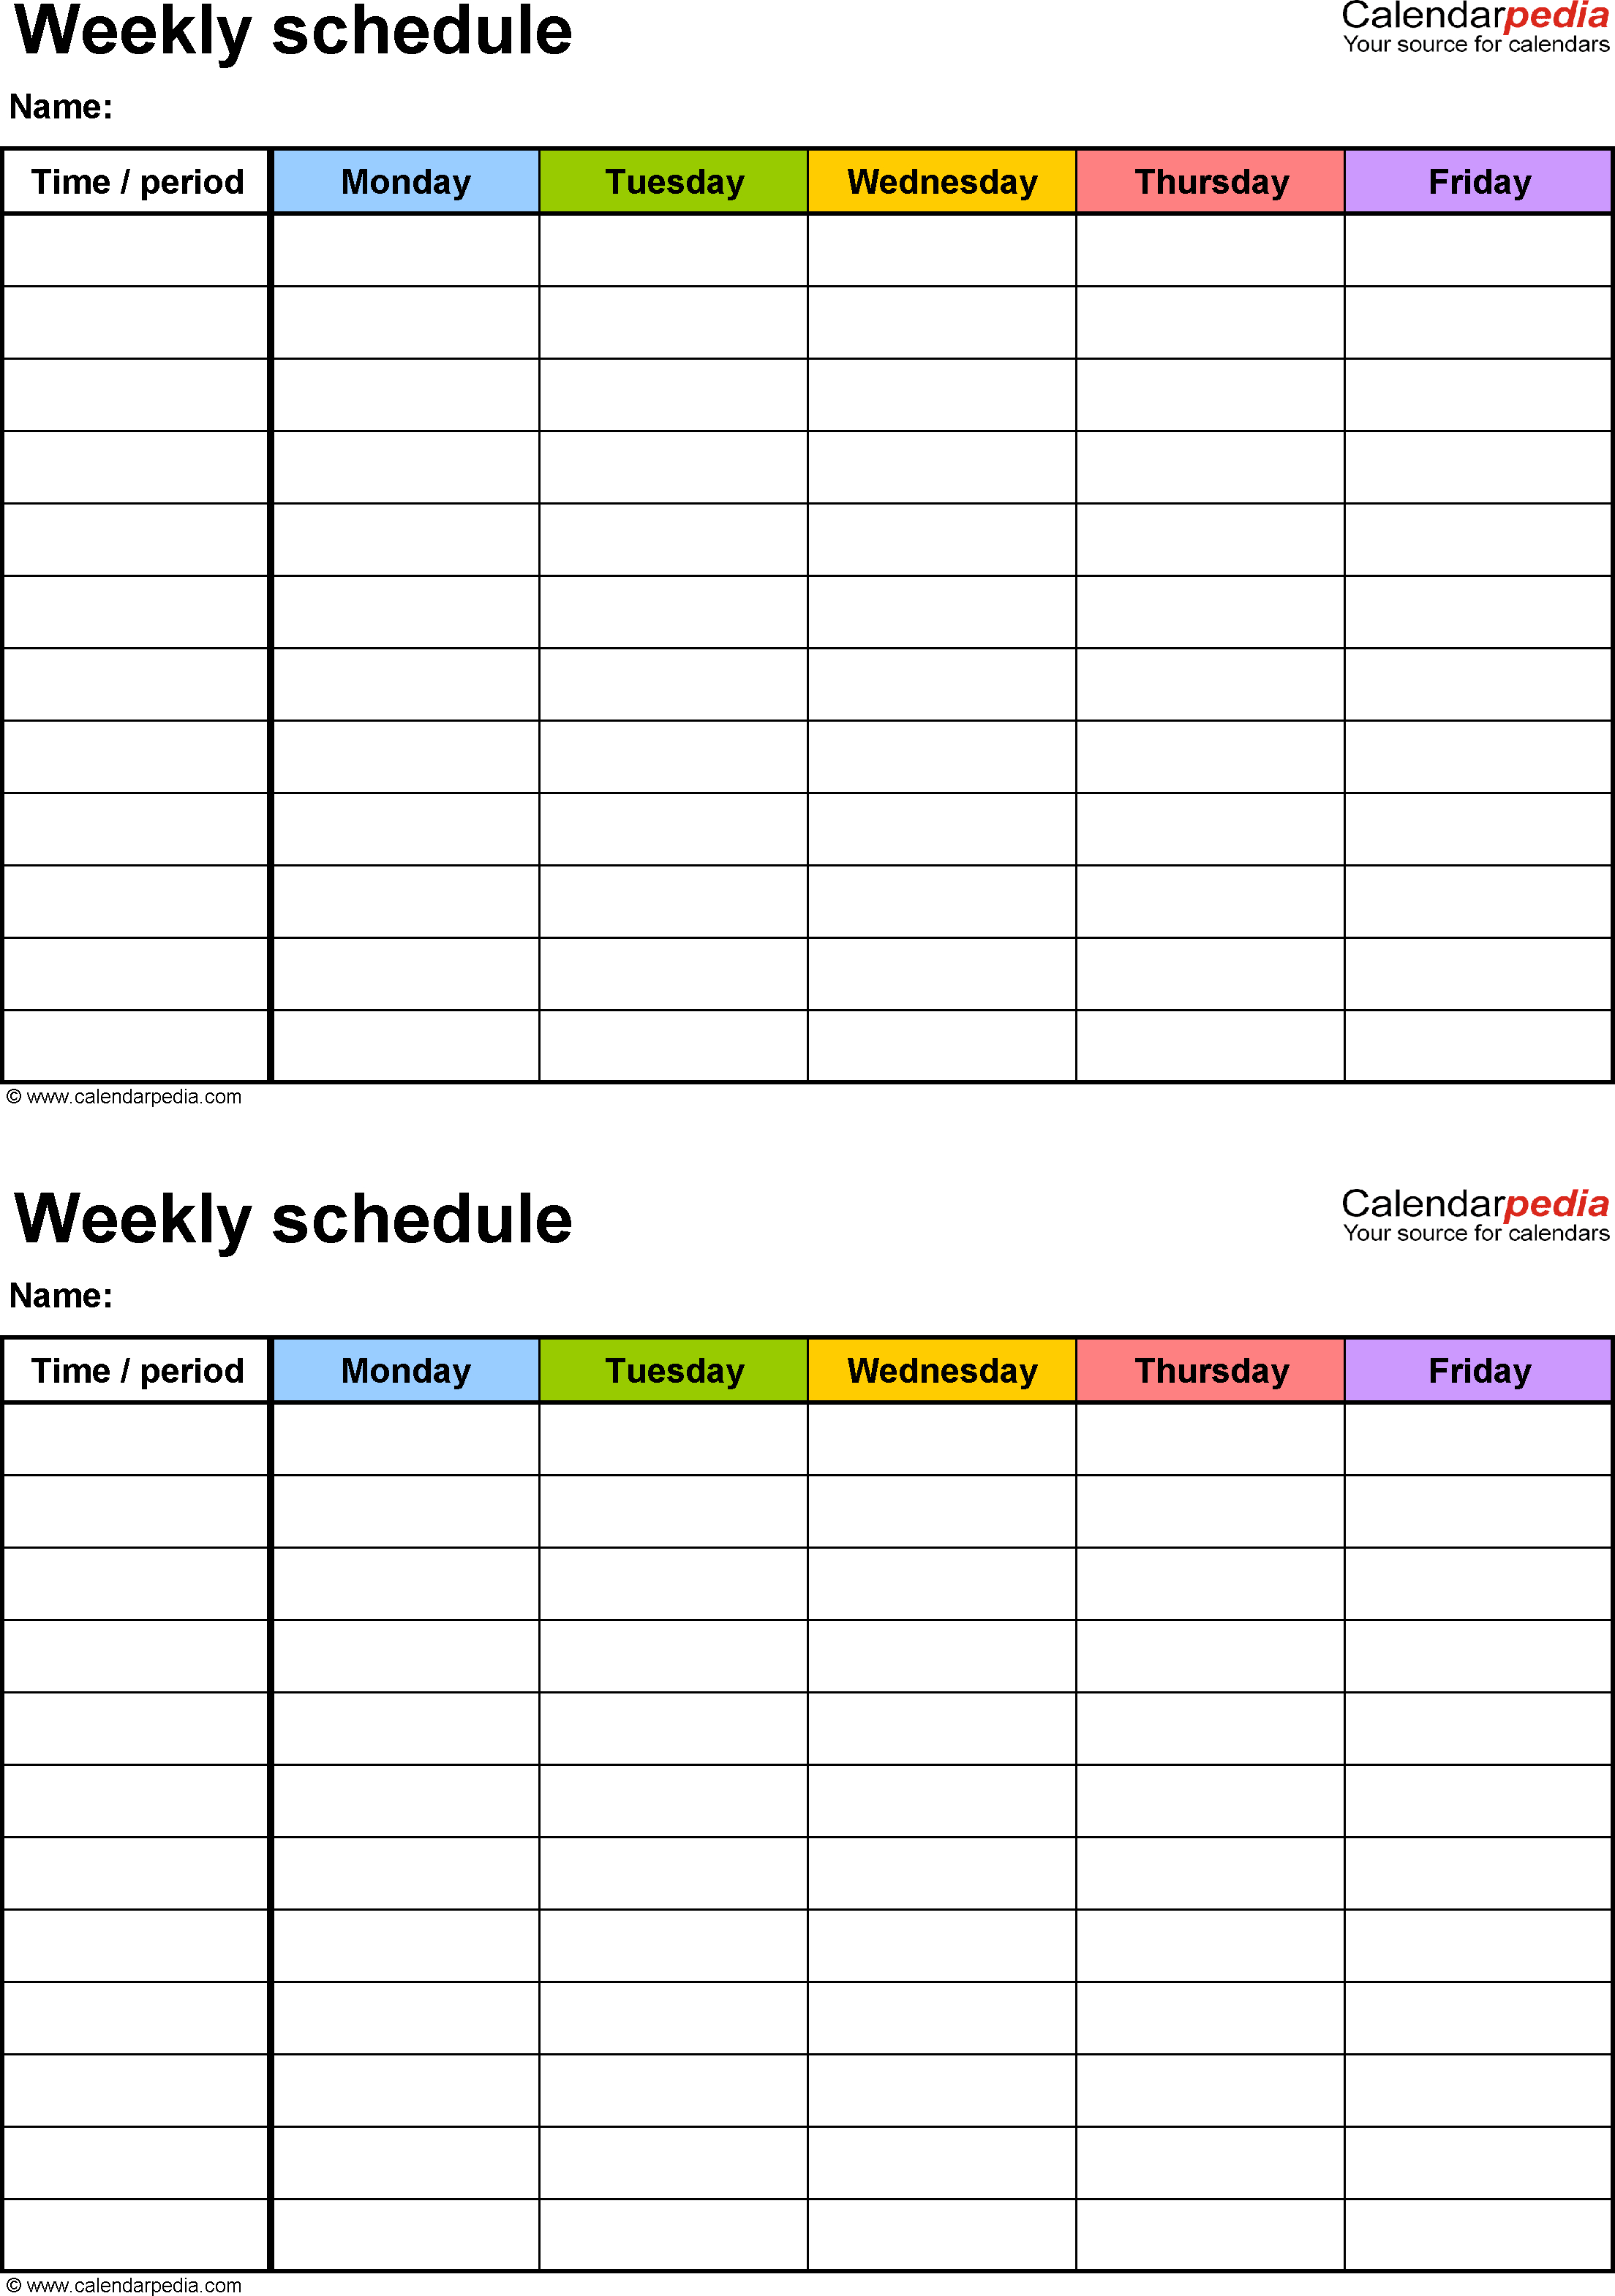 Free Weekly Schedule Templates For Word - 18 Templates in 7 Day 12 Week Planner Blank